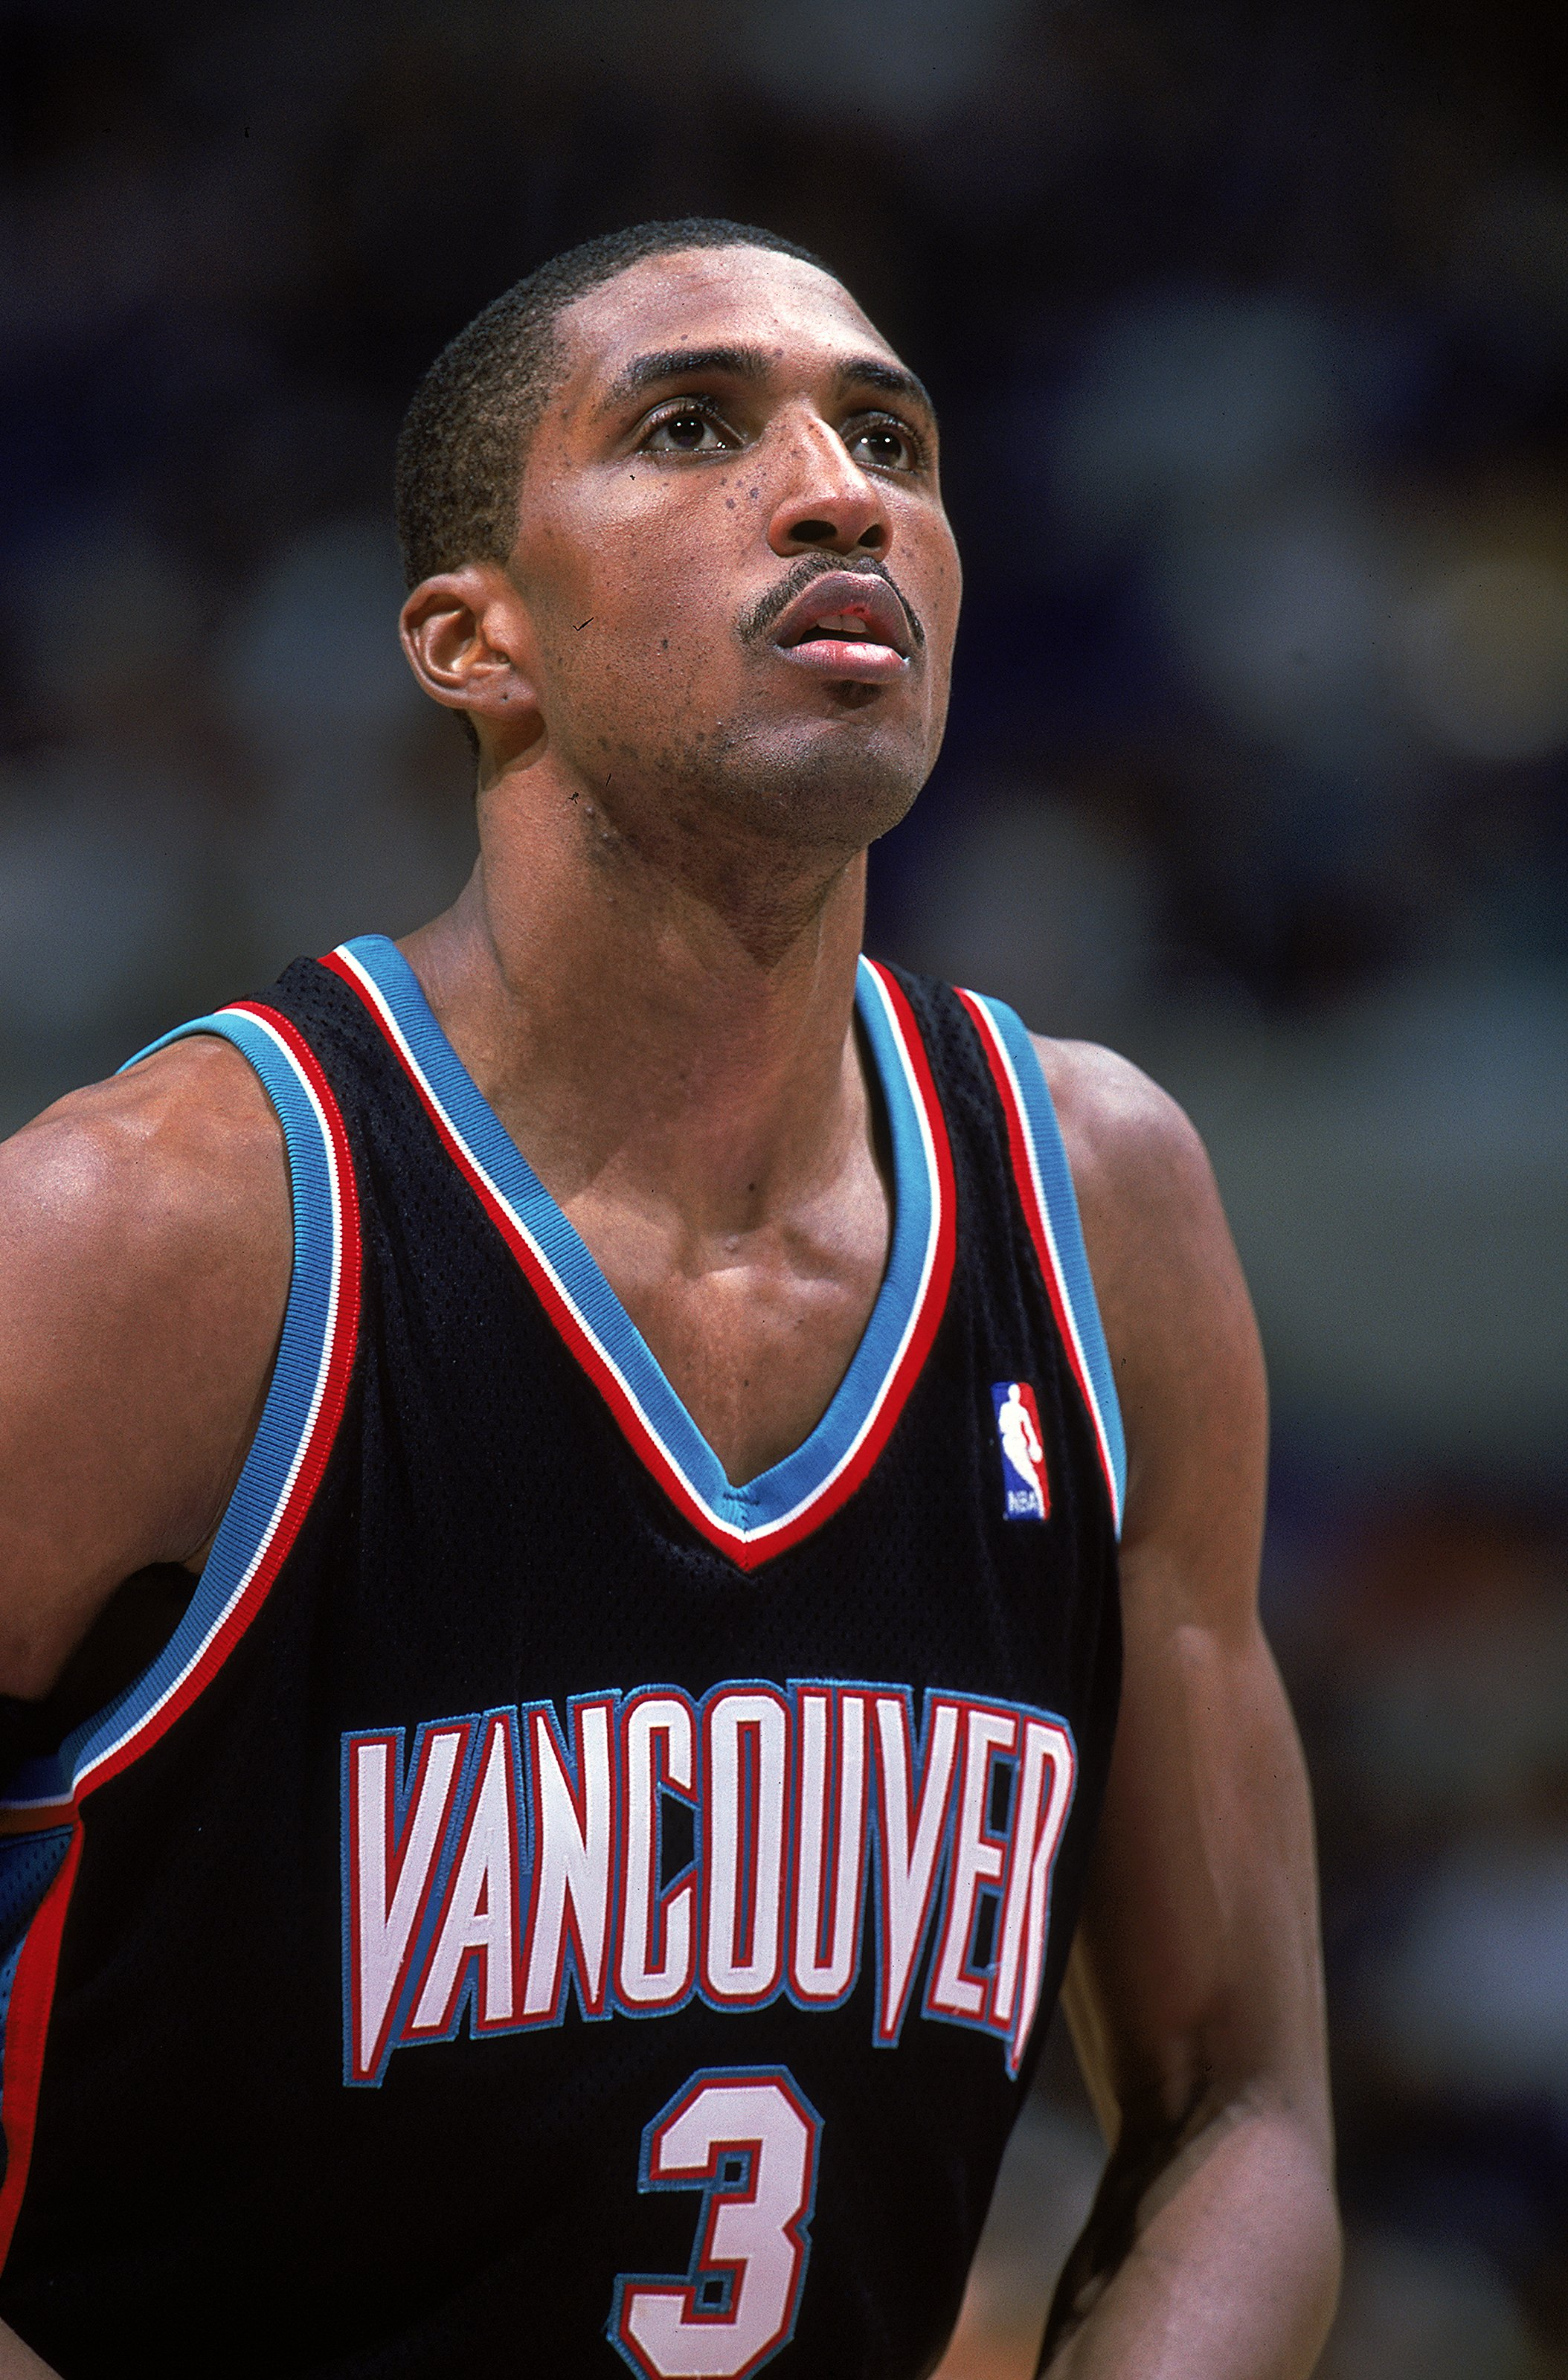 3 Nov 1999: Shareef Abdur Rahim #3 of the Vancouver Grizzlies looks to make a free throw during a game against the Los Angeles Lakers at the Staples Center in Los Angeles, California. The Lakers defeated the Grizzlies 103-88.